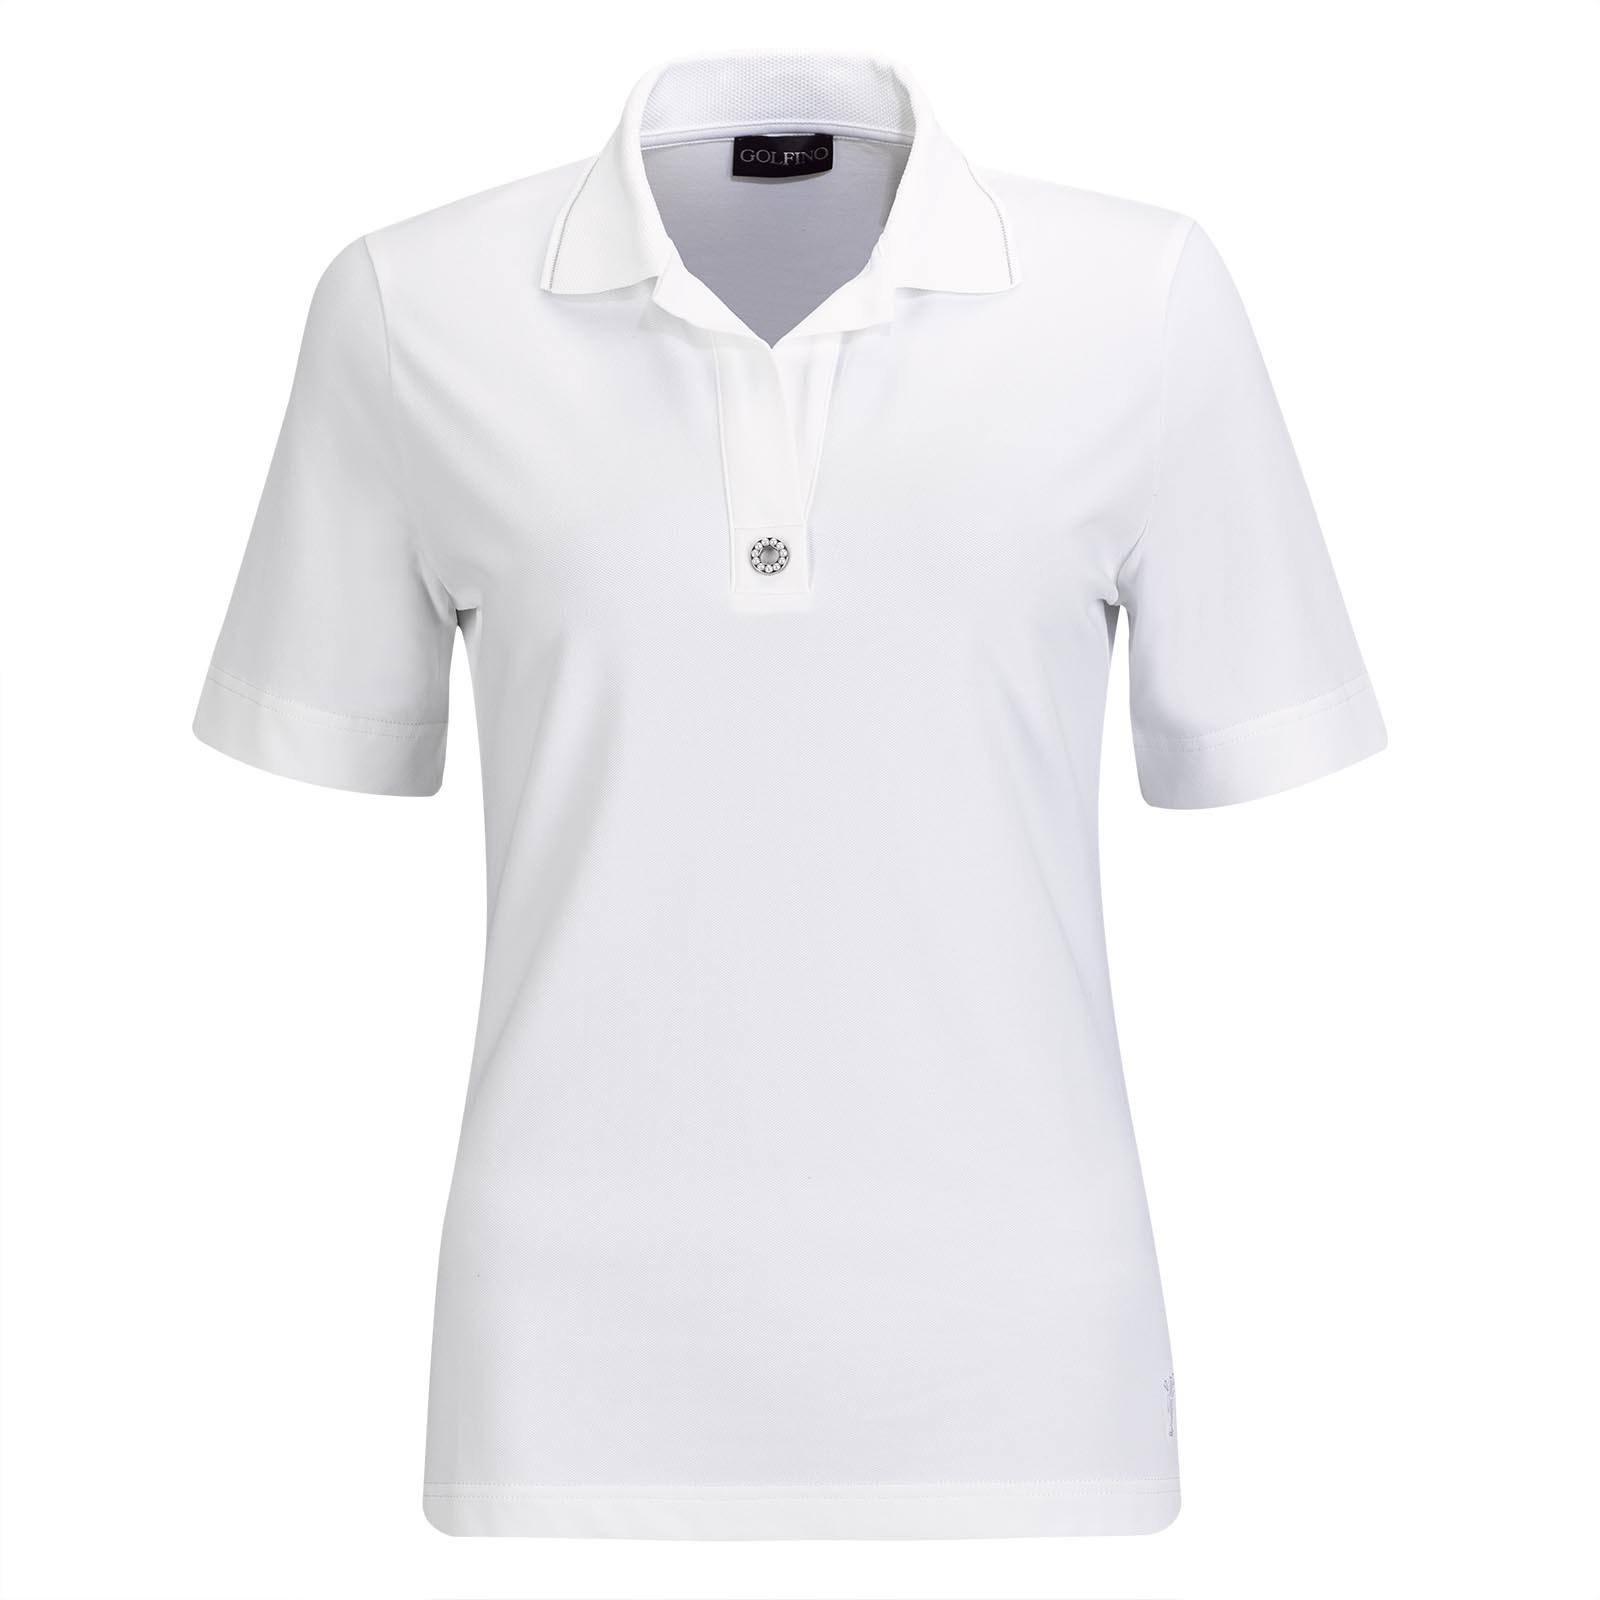 Ladies' short-sleeve cotton blend golf polo with stretch function and pearl trim